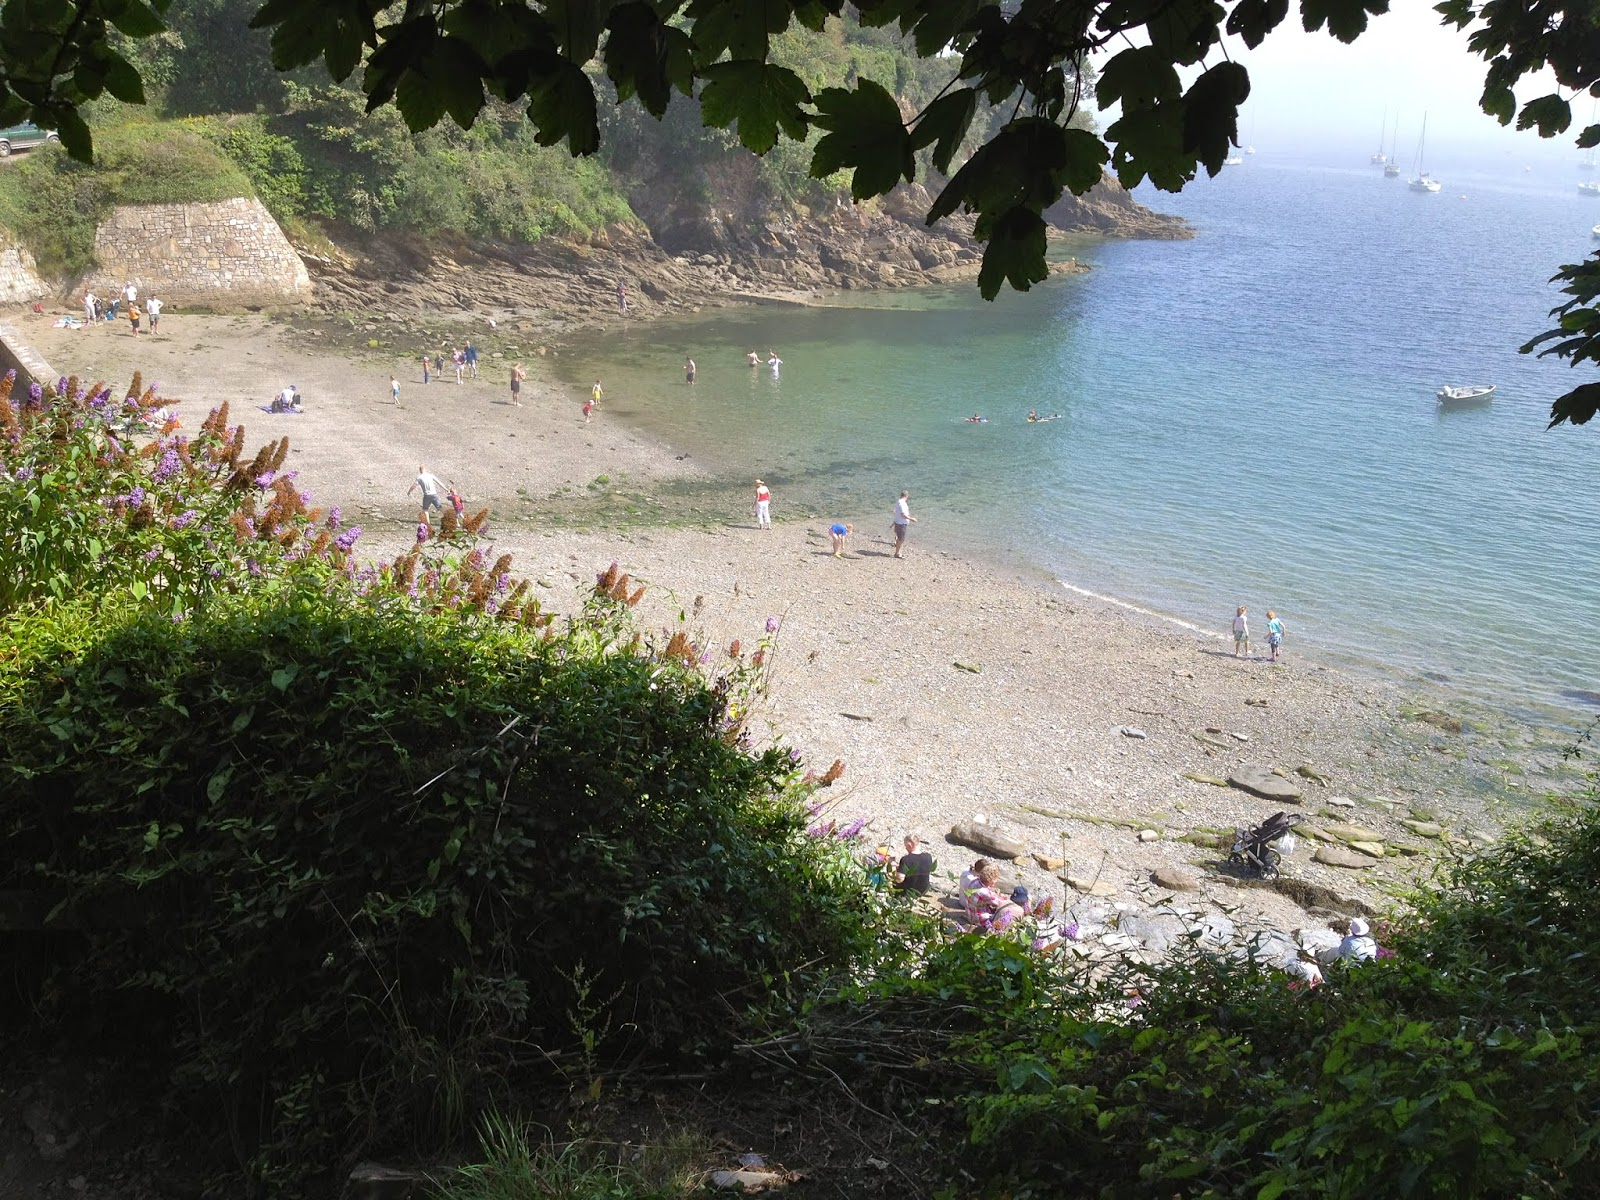 Children playing on the shore of the Helford River, Cornwall